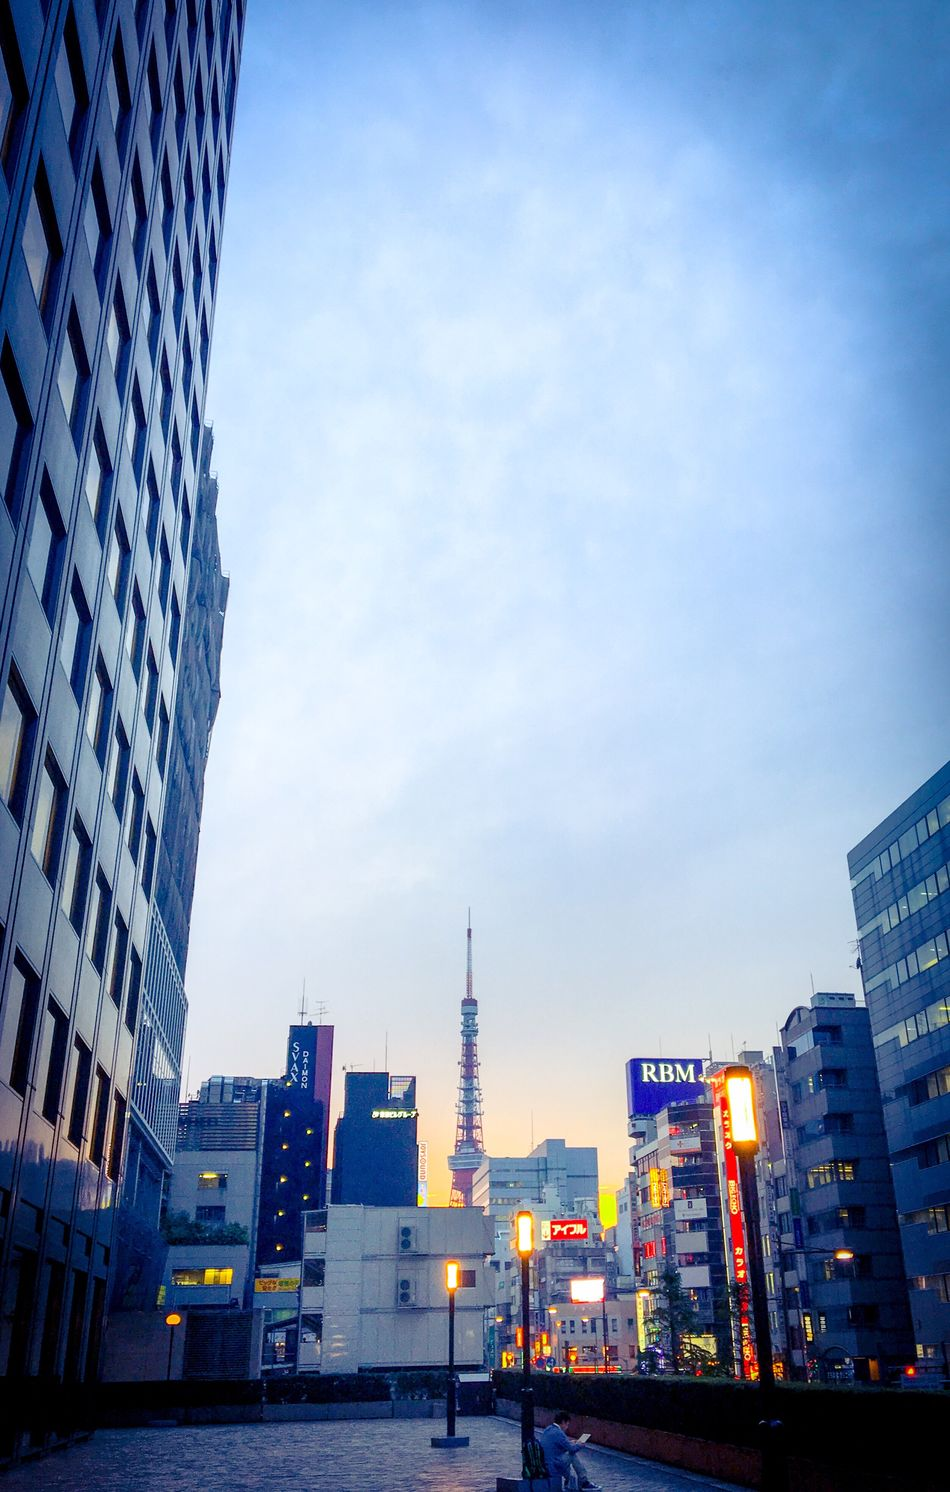 Sunset Sunset_collection Sunset Silhouettes Tokyo Tower Architecture Building Exterior Built Structure Skyscraper City Modern Tower Sky Tall Outdoors Low Angle View Cityscape No People Day Office Park Art Is Everywhere The Secret Spaces EyeEmNewHere